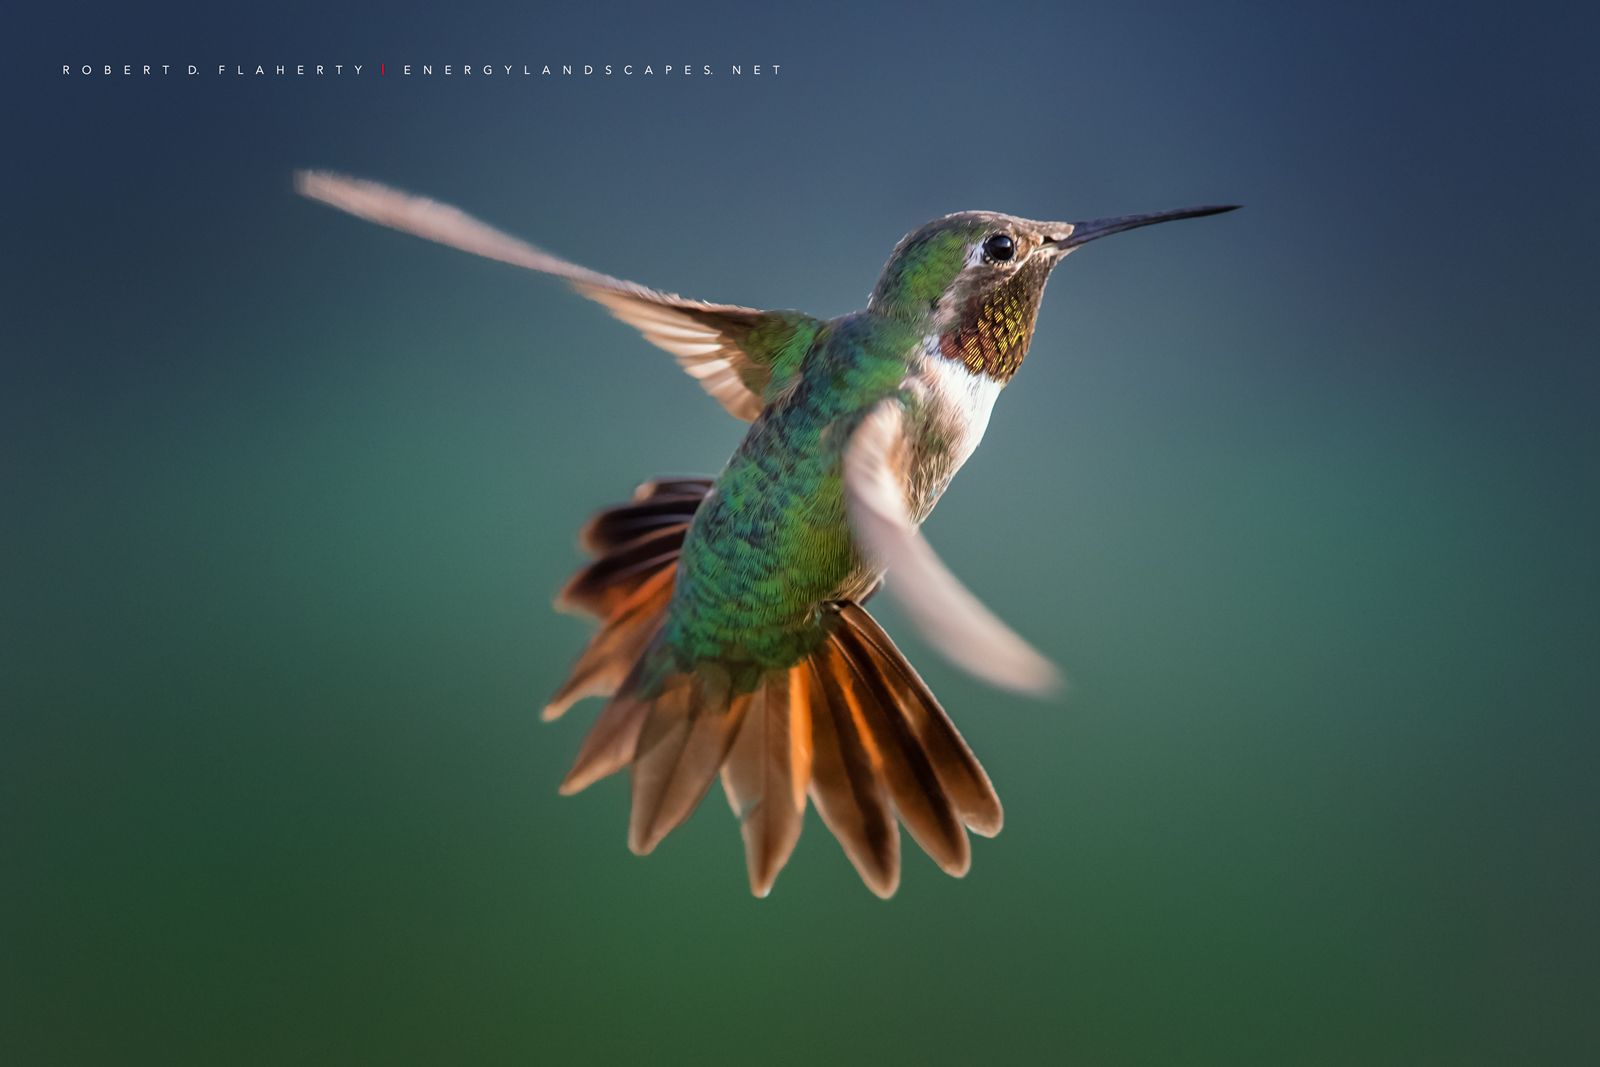 Rise And Shine, hummingbird, hummingbirds, fine art photography, New Mexico, South Central Mountains, monsoon, Ruidoso, Ruidoso New Mexico, rain, fine art, photo